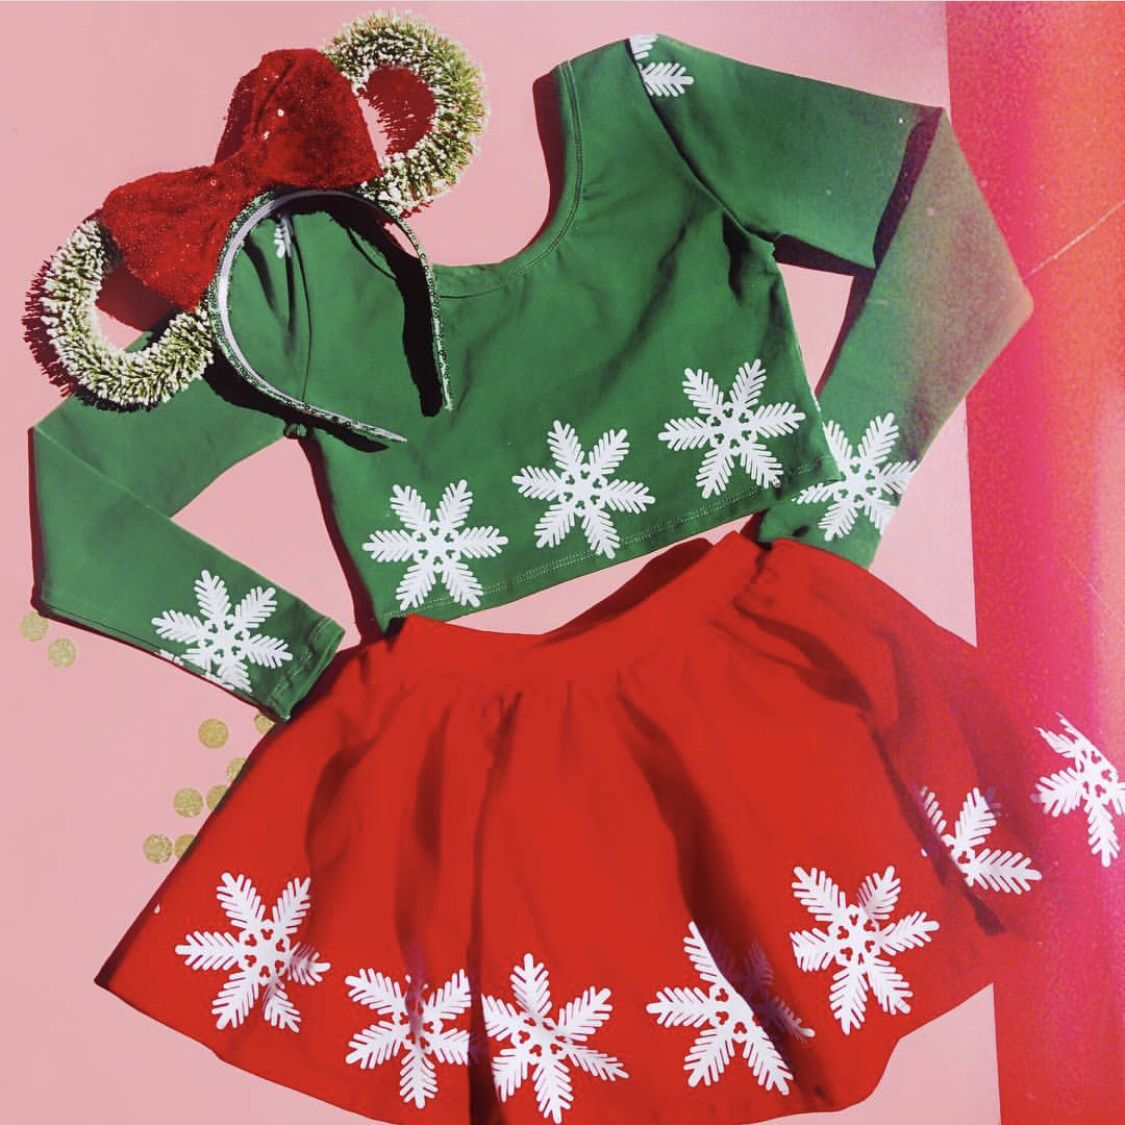 Minnie Mouse Christmas Dress.Minnie Mouse Inspired Christmas Outfit Available For Kids At